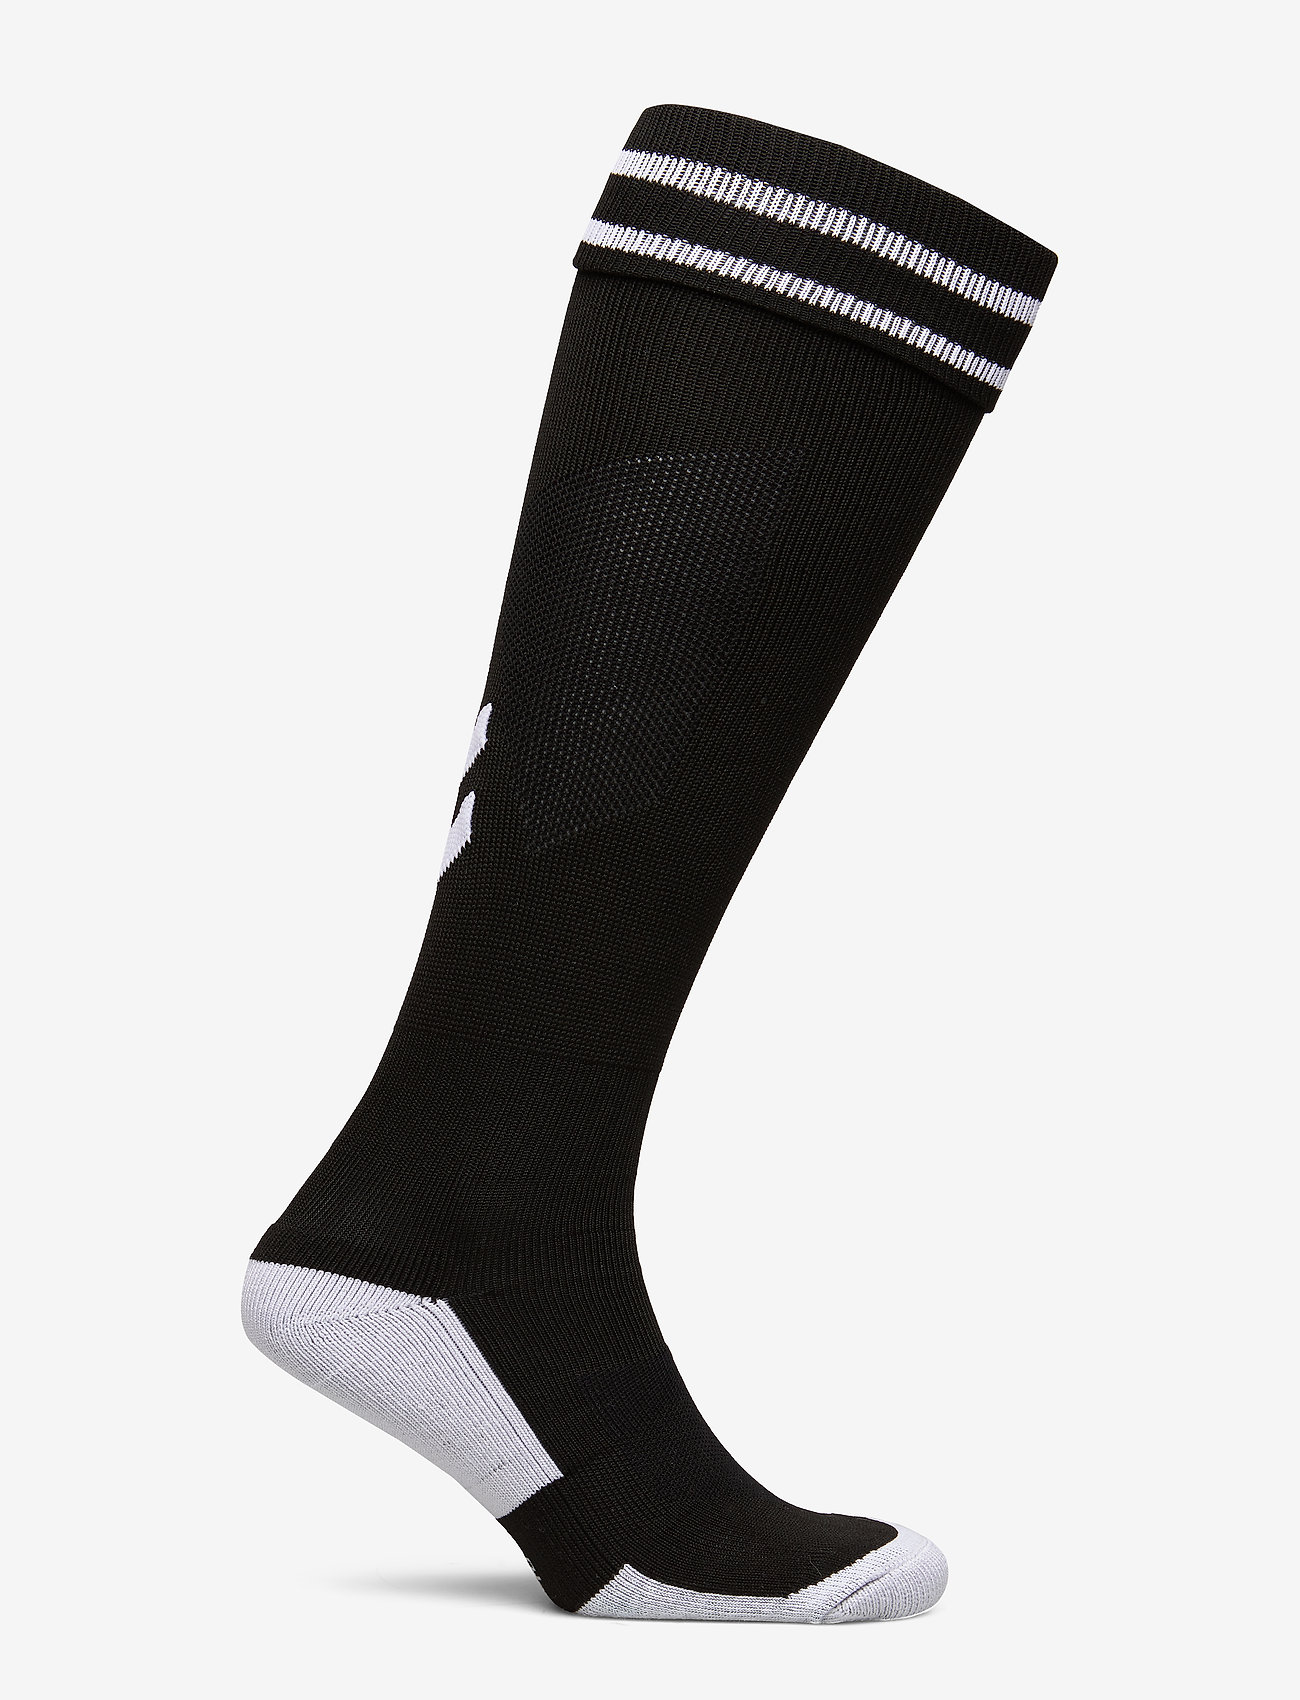 Hummel - ELEMENT FOOTBALL SOCK - jalkapallosukat - black/white - 1